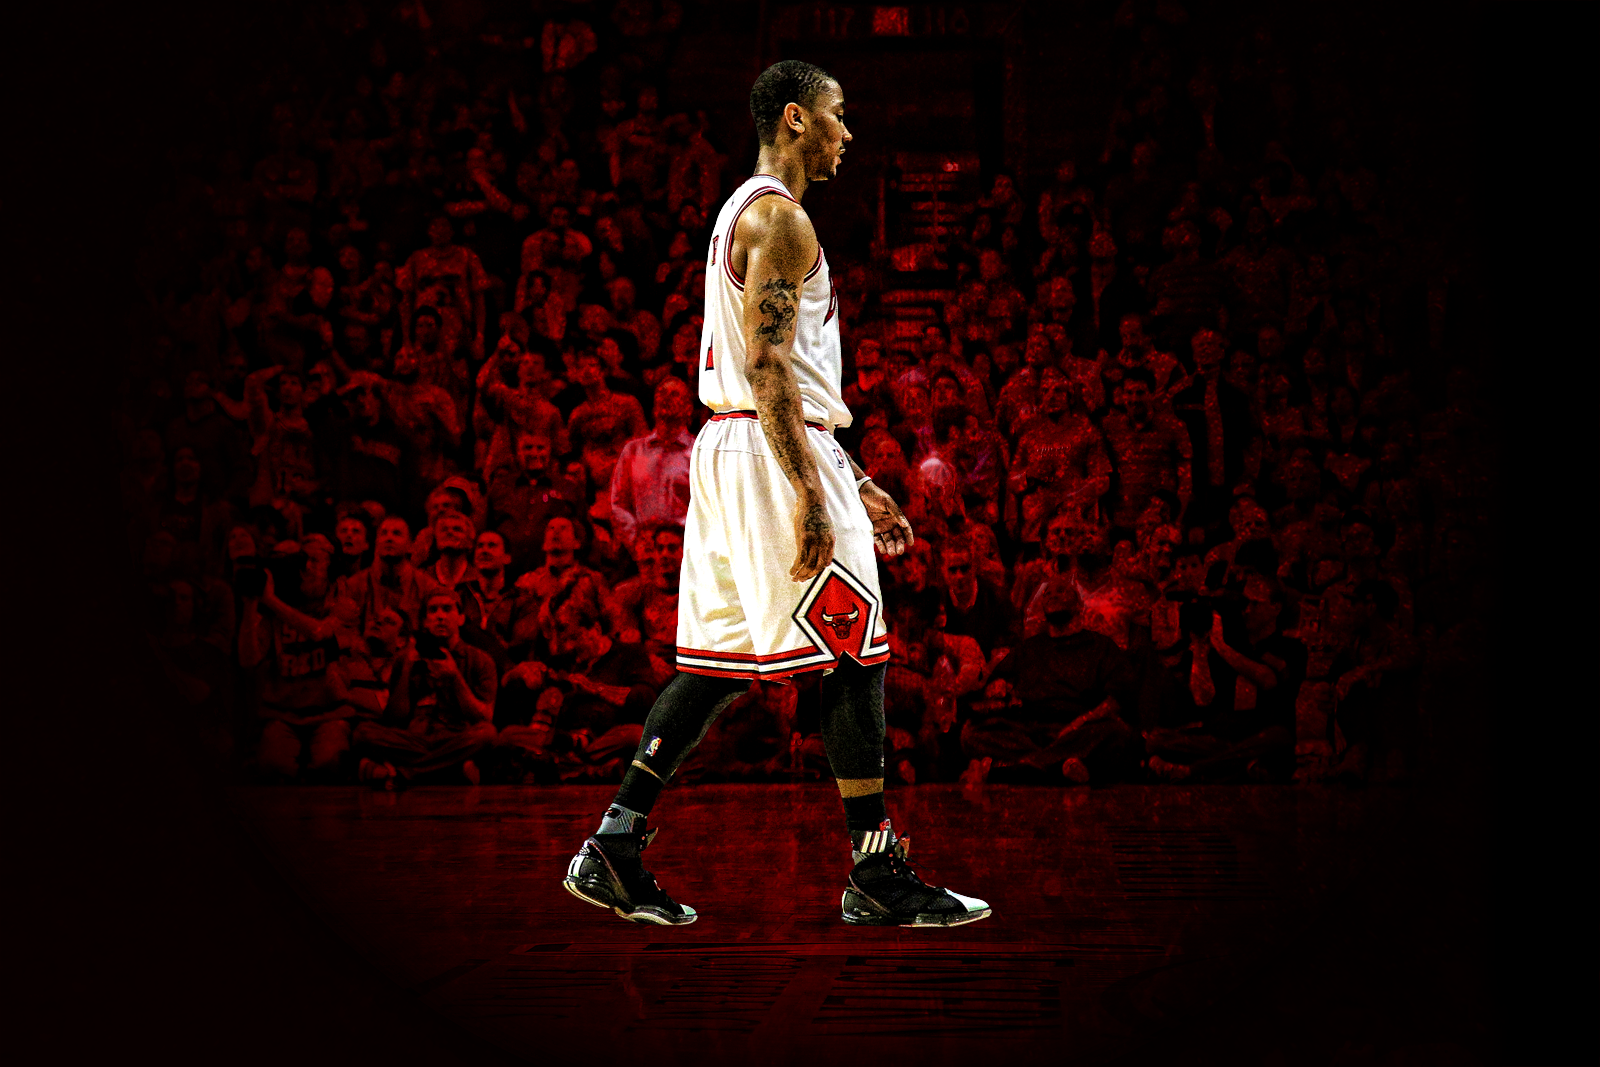 derrick rose wallpaper iphone - photo #34